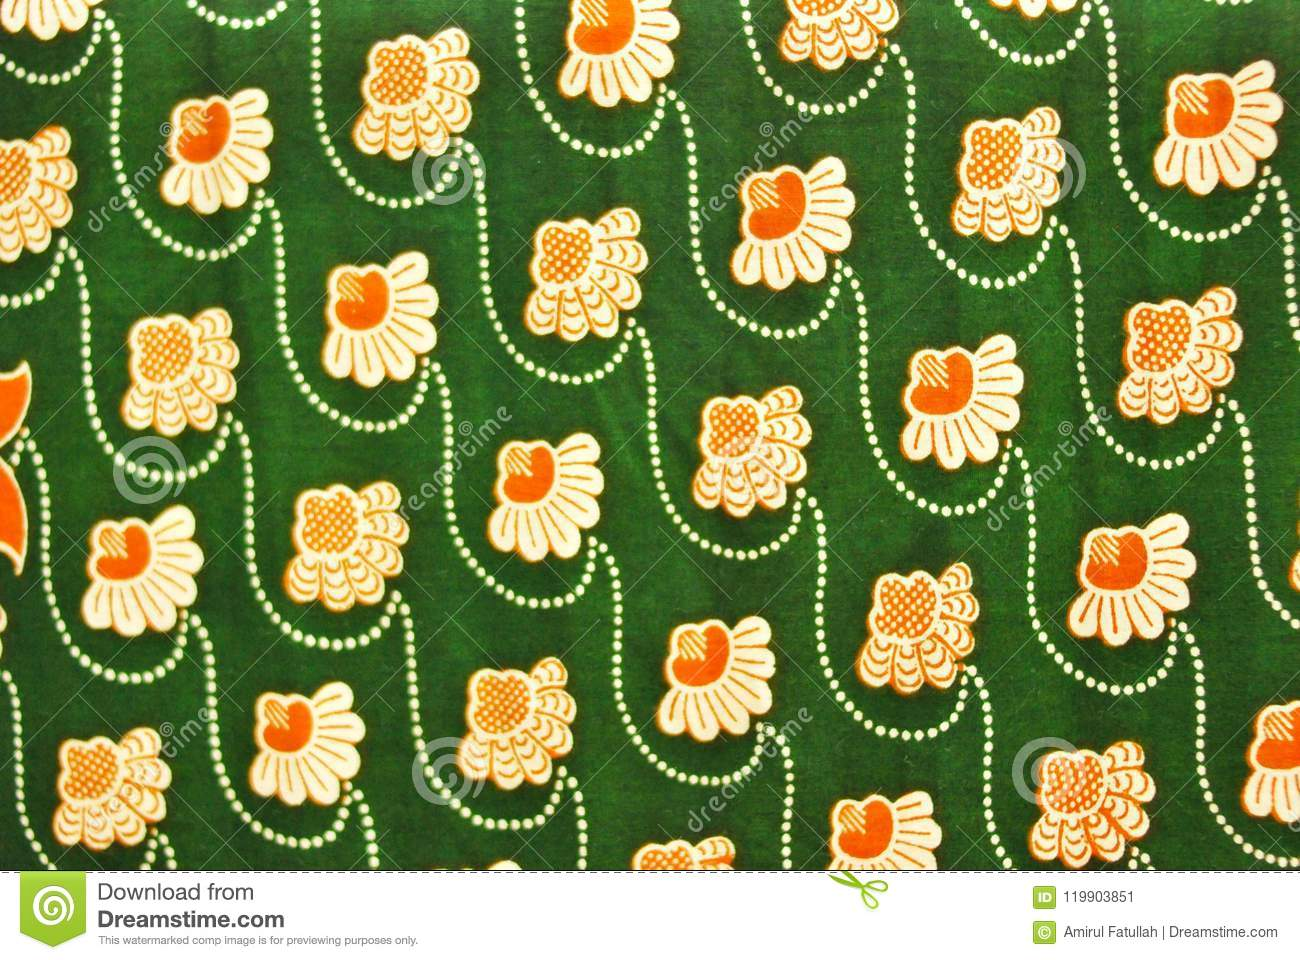 Green Textile texture background with flower patterns